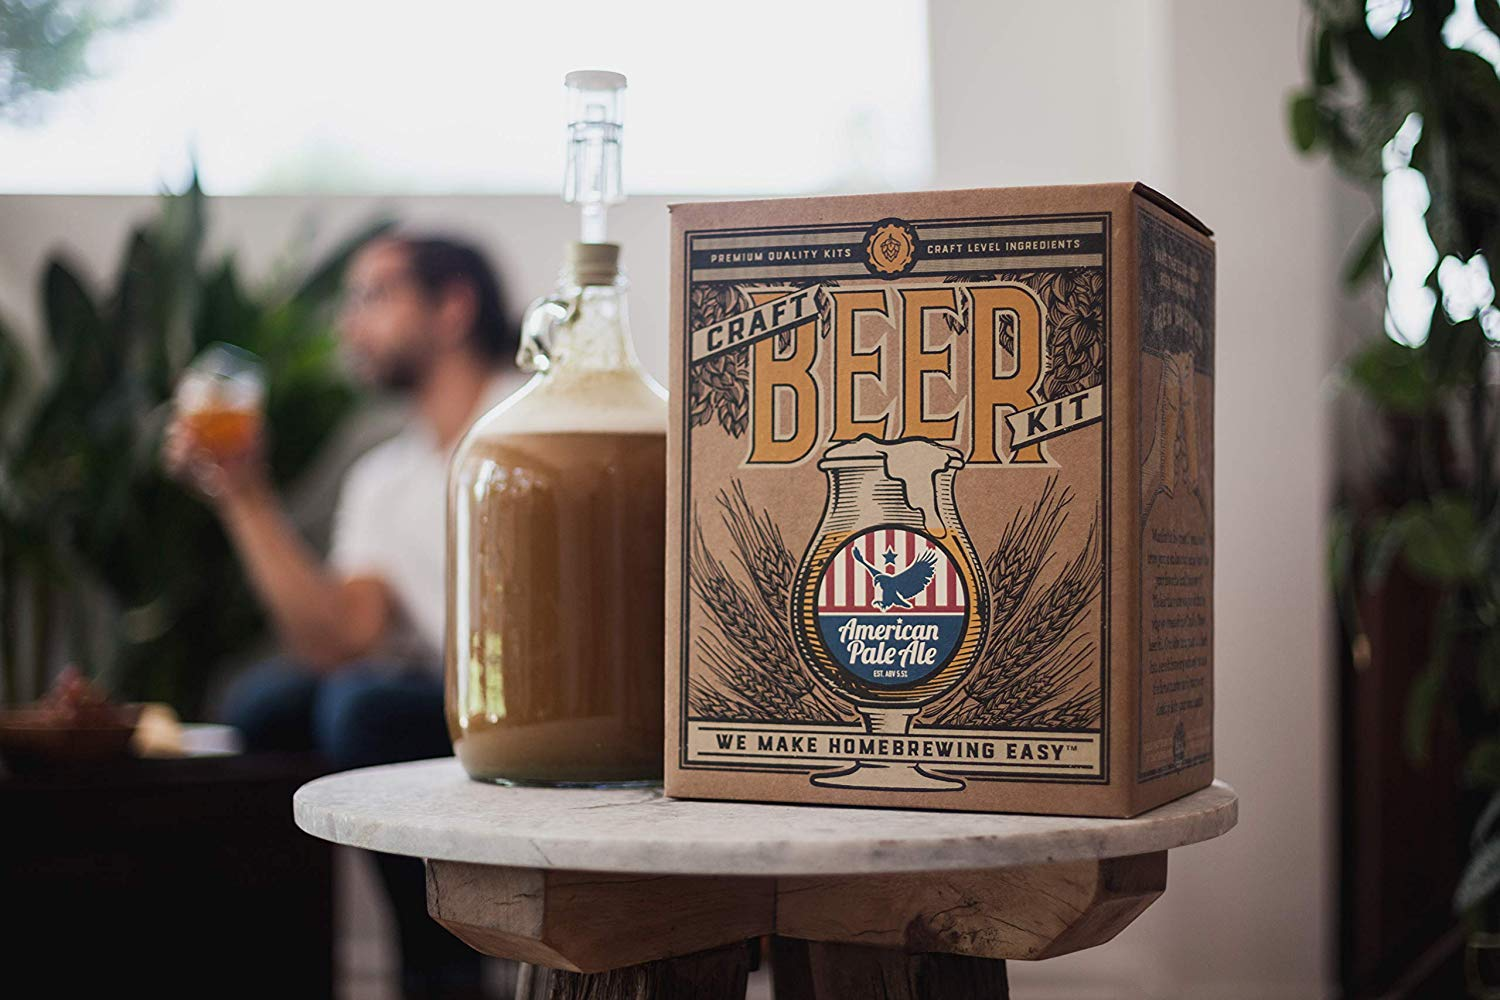 Craft-a-Brew home brewing kit